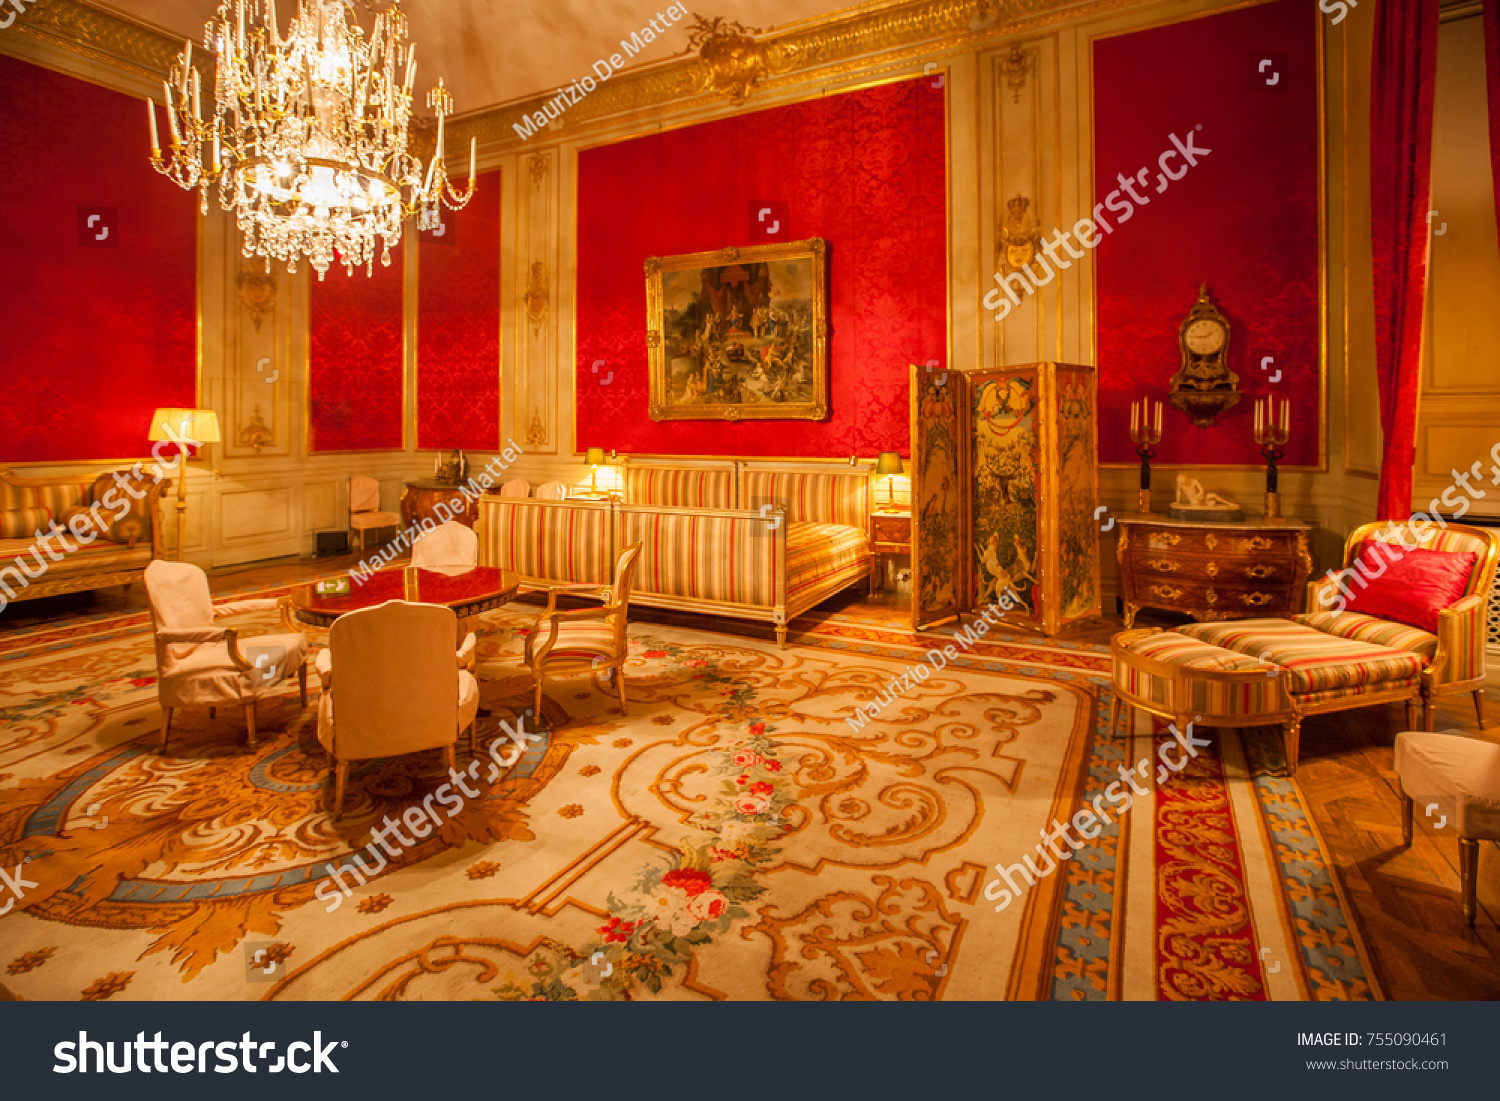 Stockholm circa march 2016 interior of the royal palace of stockholm sweden